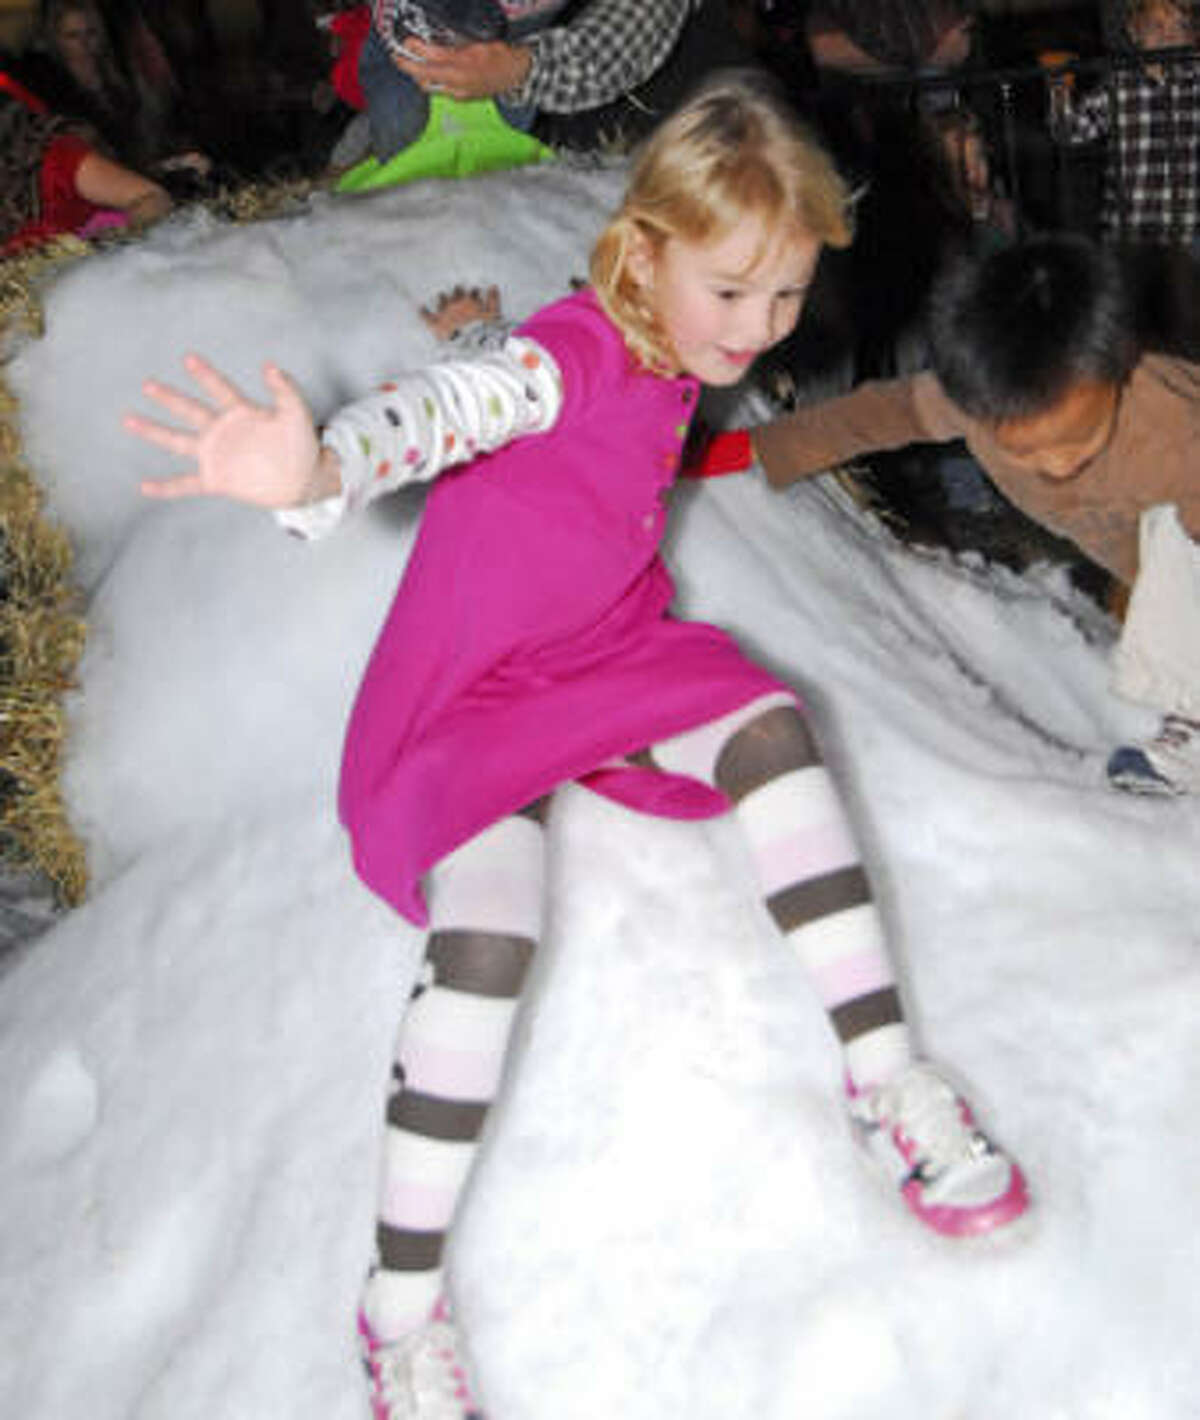 Five-year-old Pia Ekeberl (cq) slides down the snow hill during the 6th Annual Community Christmas Tree Lighting ceremony at The Fellowship at Cinco Ranch Nov. 29.